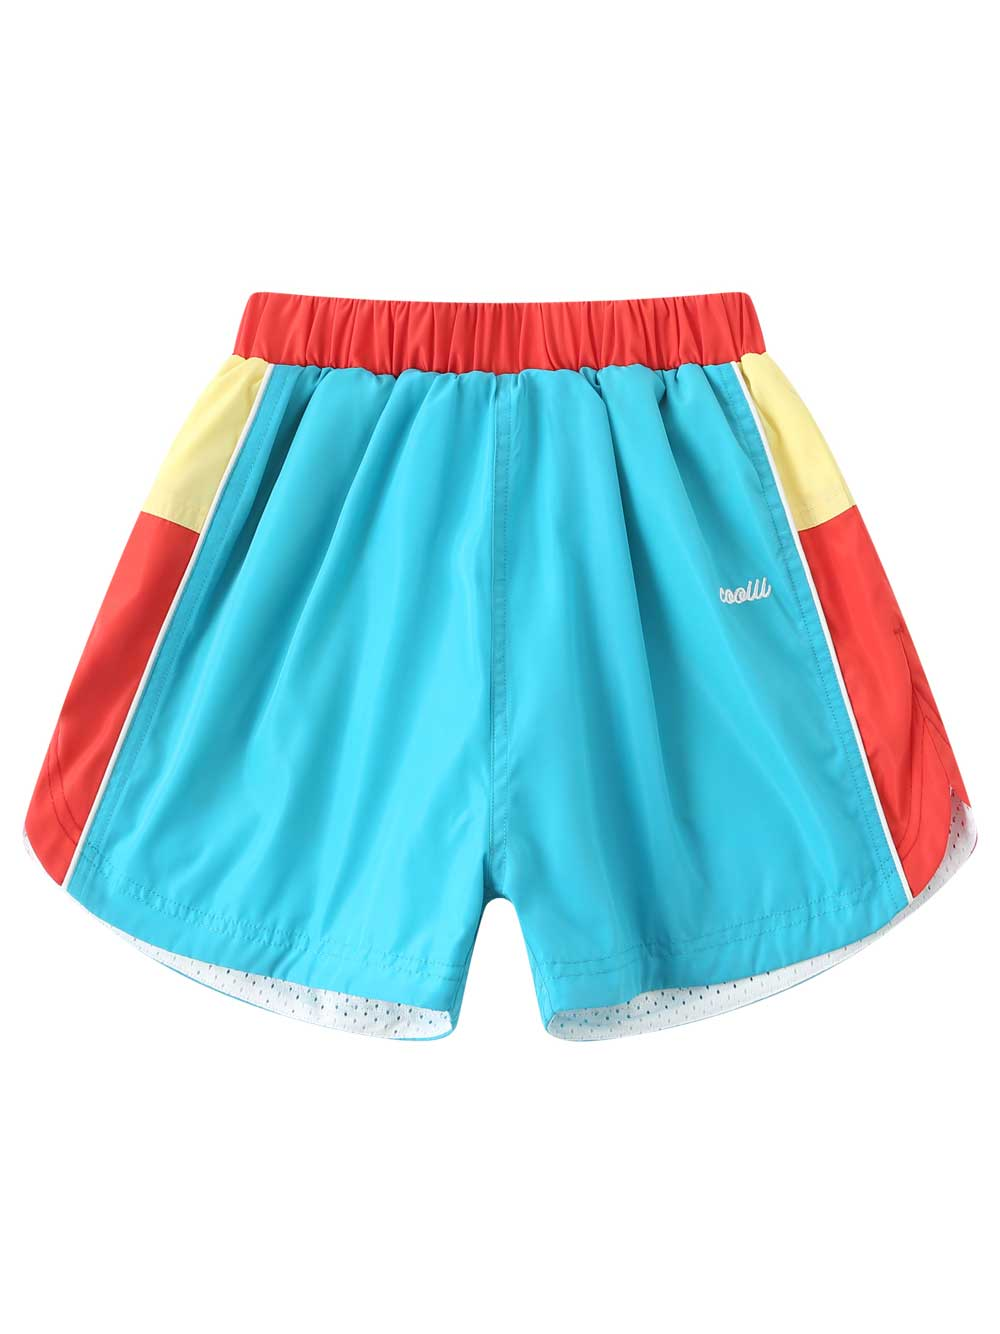 Blue Memory Farbic Shorts